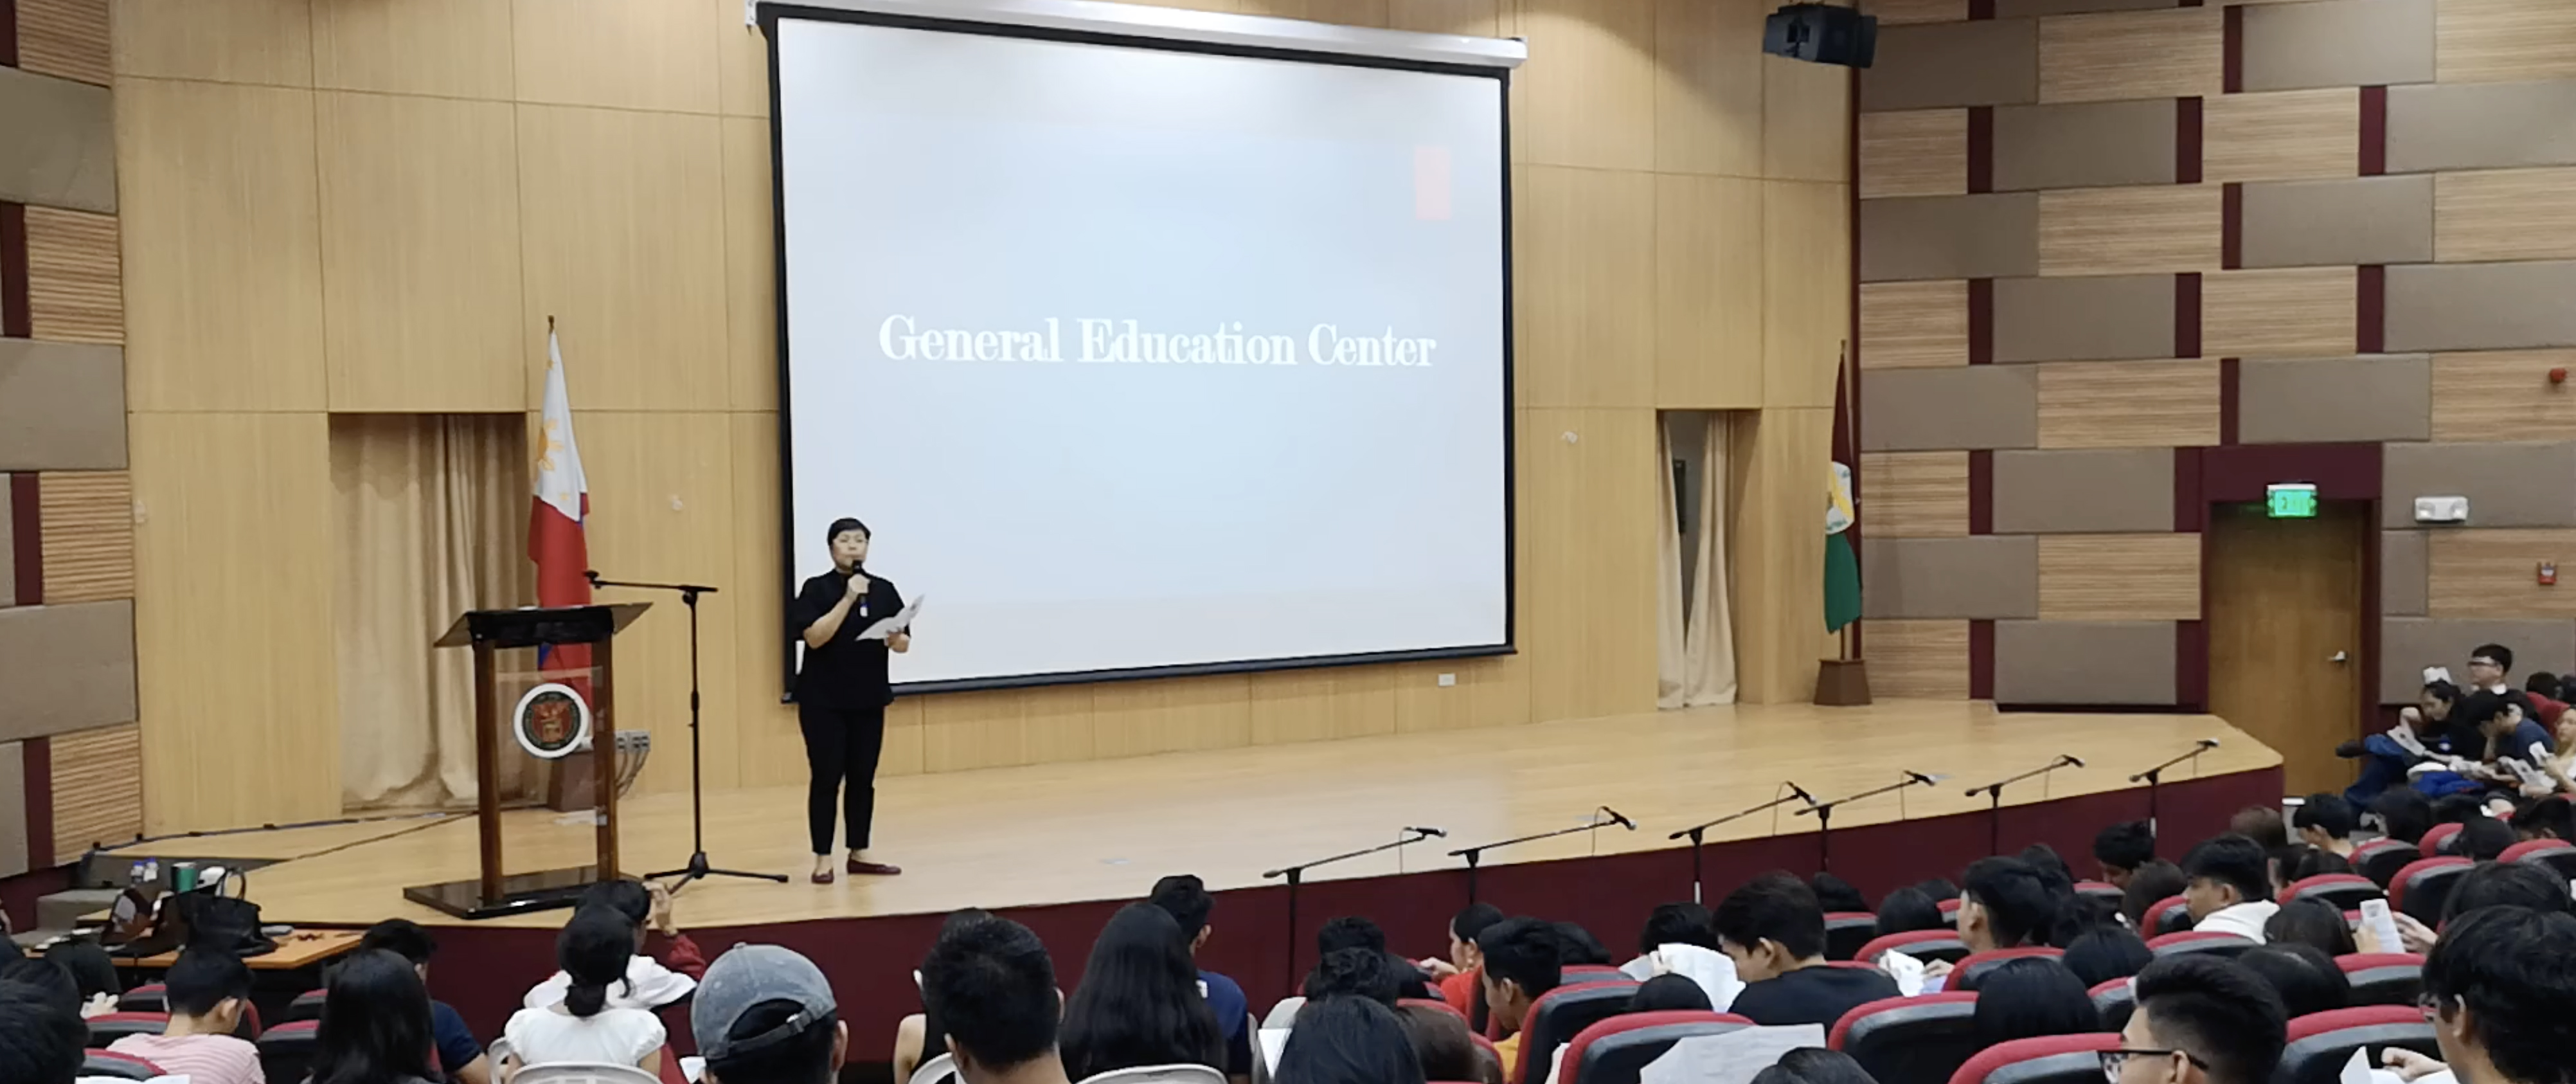 GEC Welcomes Freshies with the 2017 General Education Program